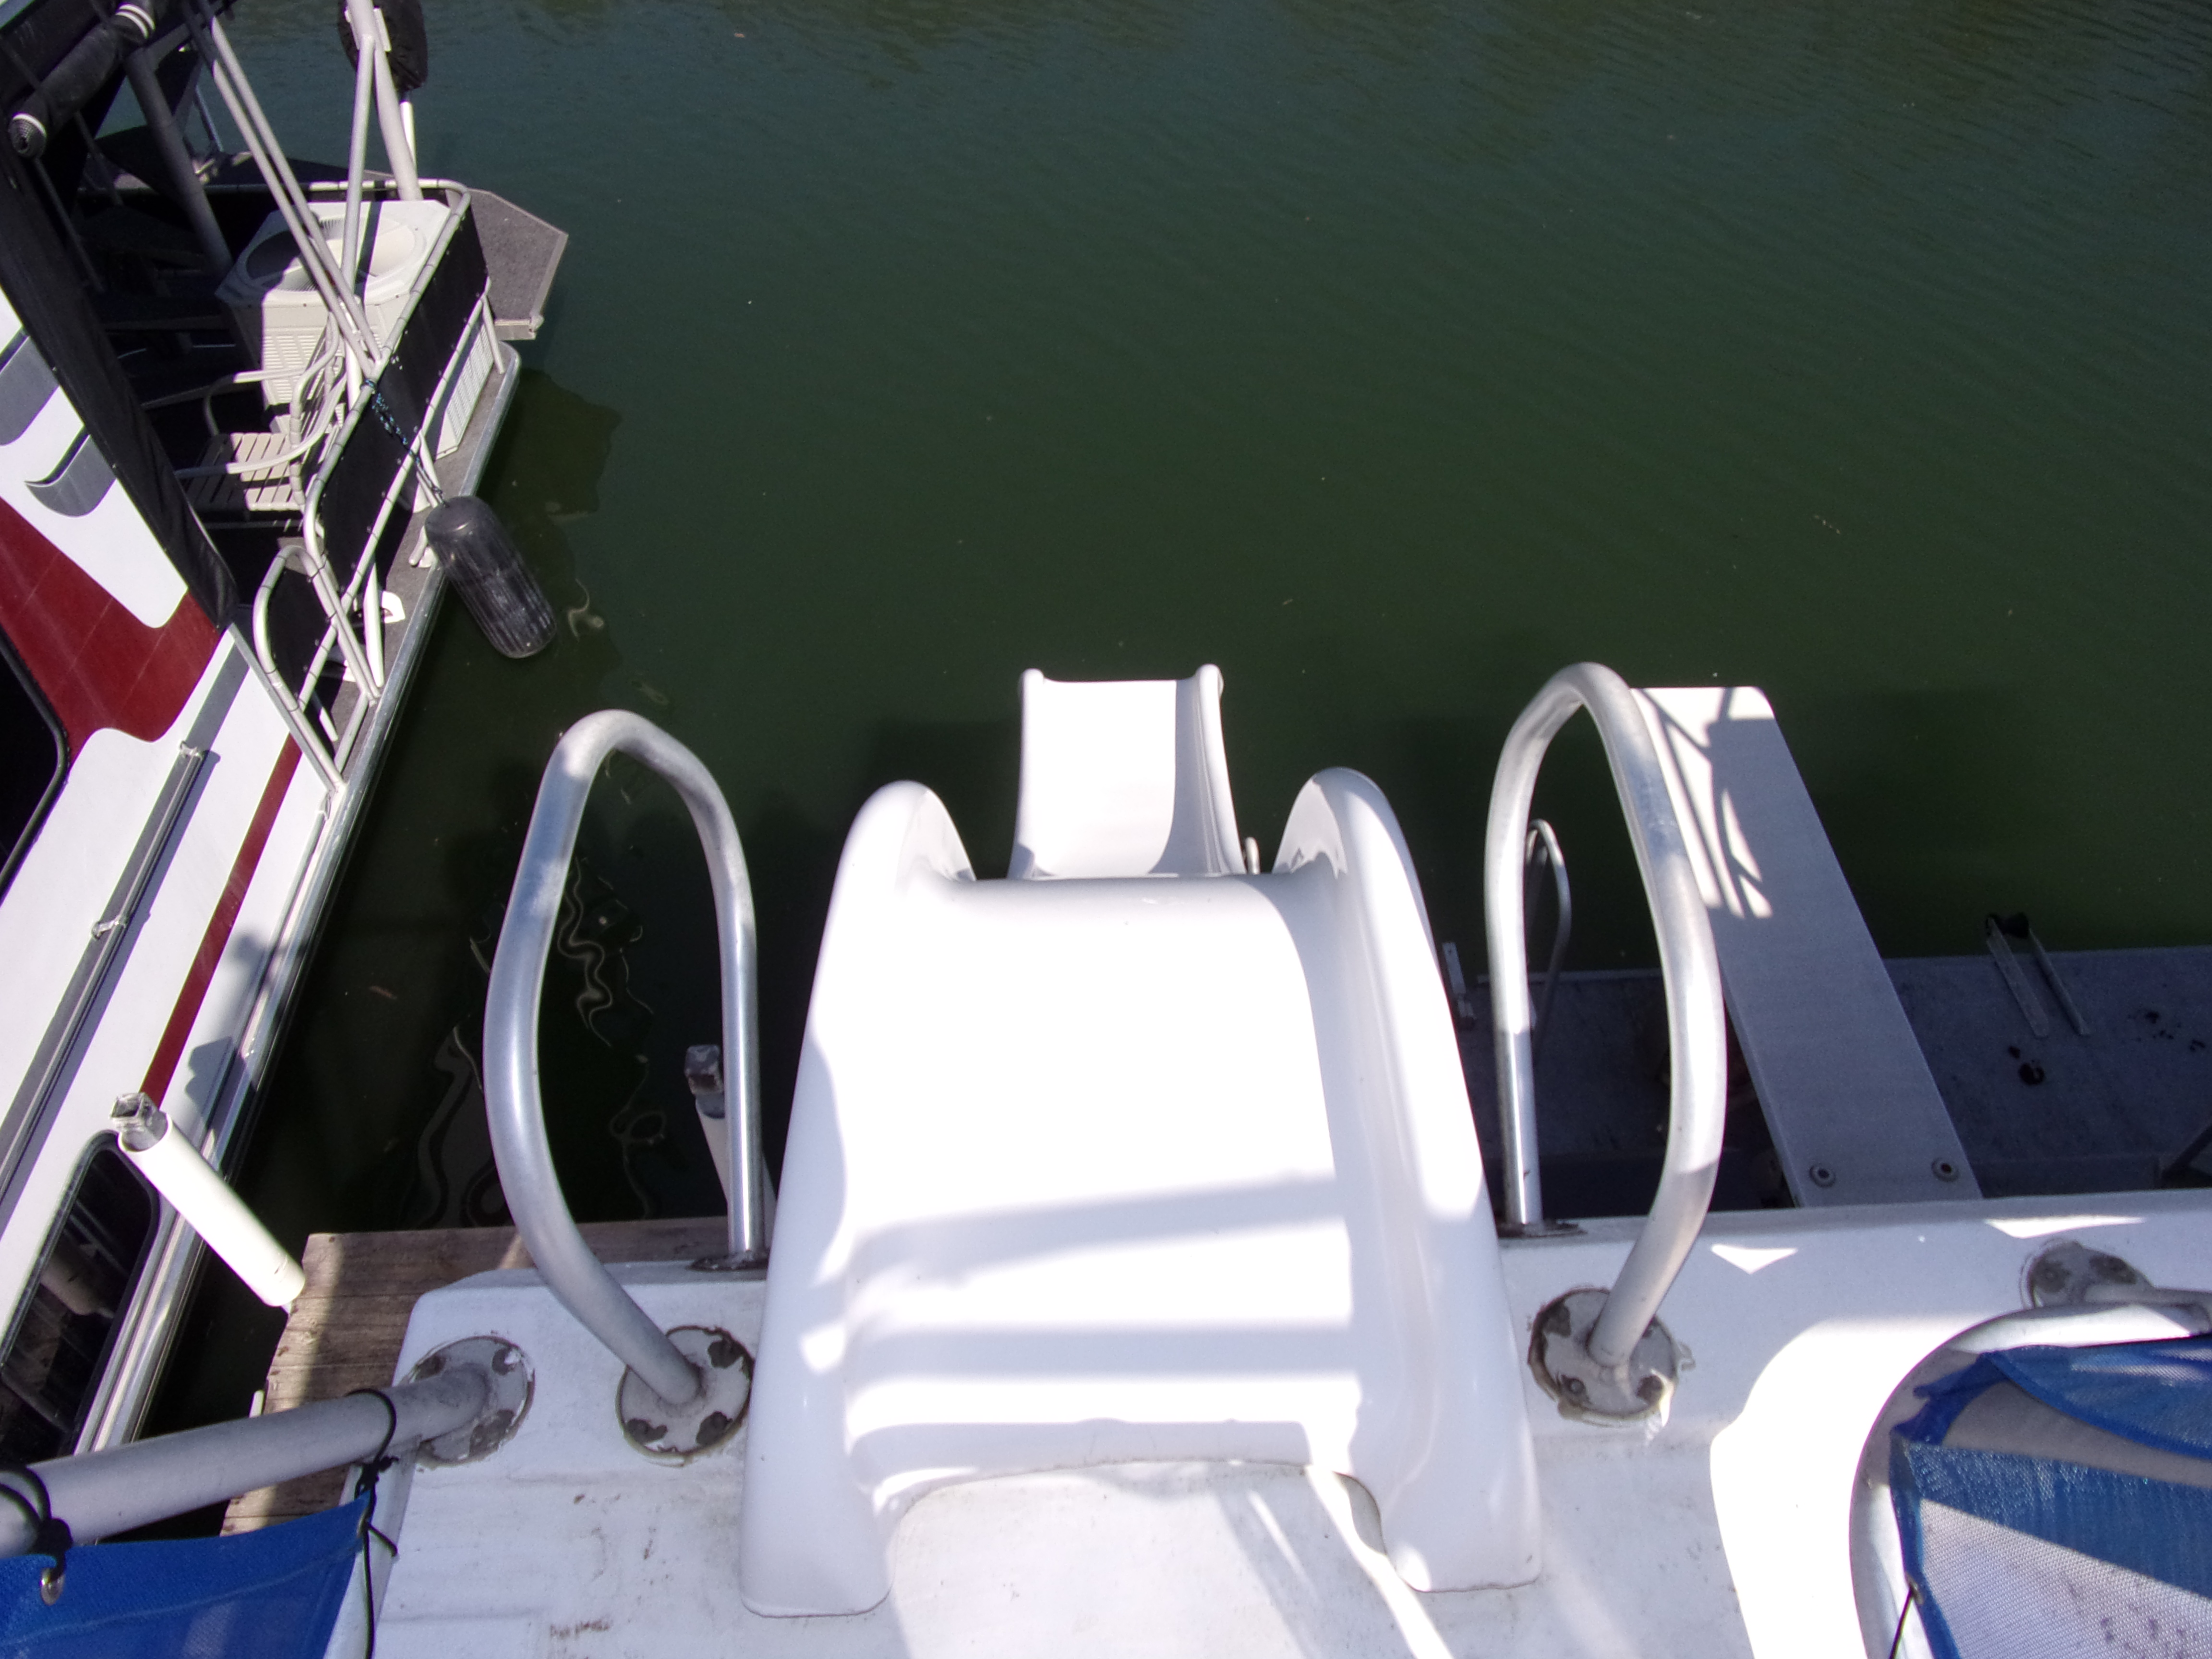 1998 Sunstar 18 X 65 Nautical Notion Price Reduced